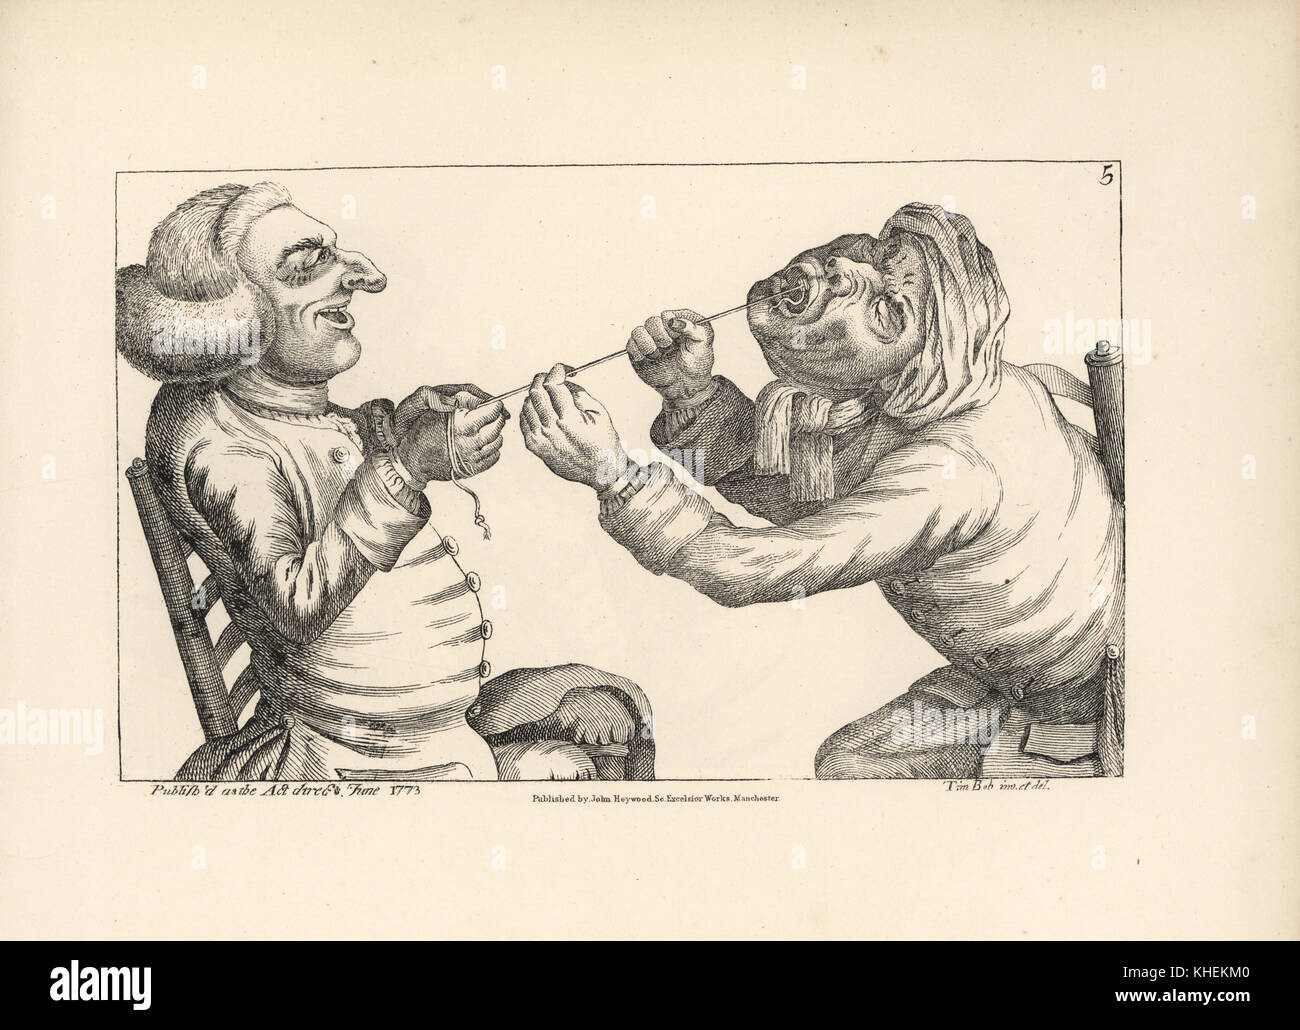 Physician laughing as he pulls a patient's tooth with string. Copperplate engraving after a satirical illustration - Stock Image